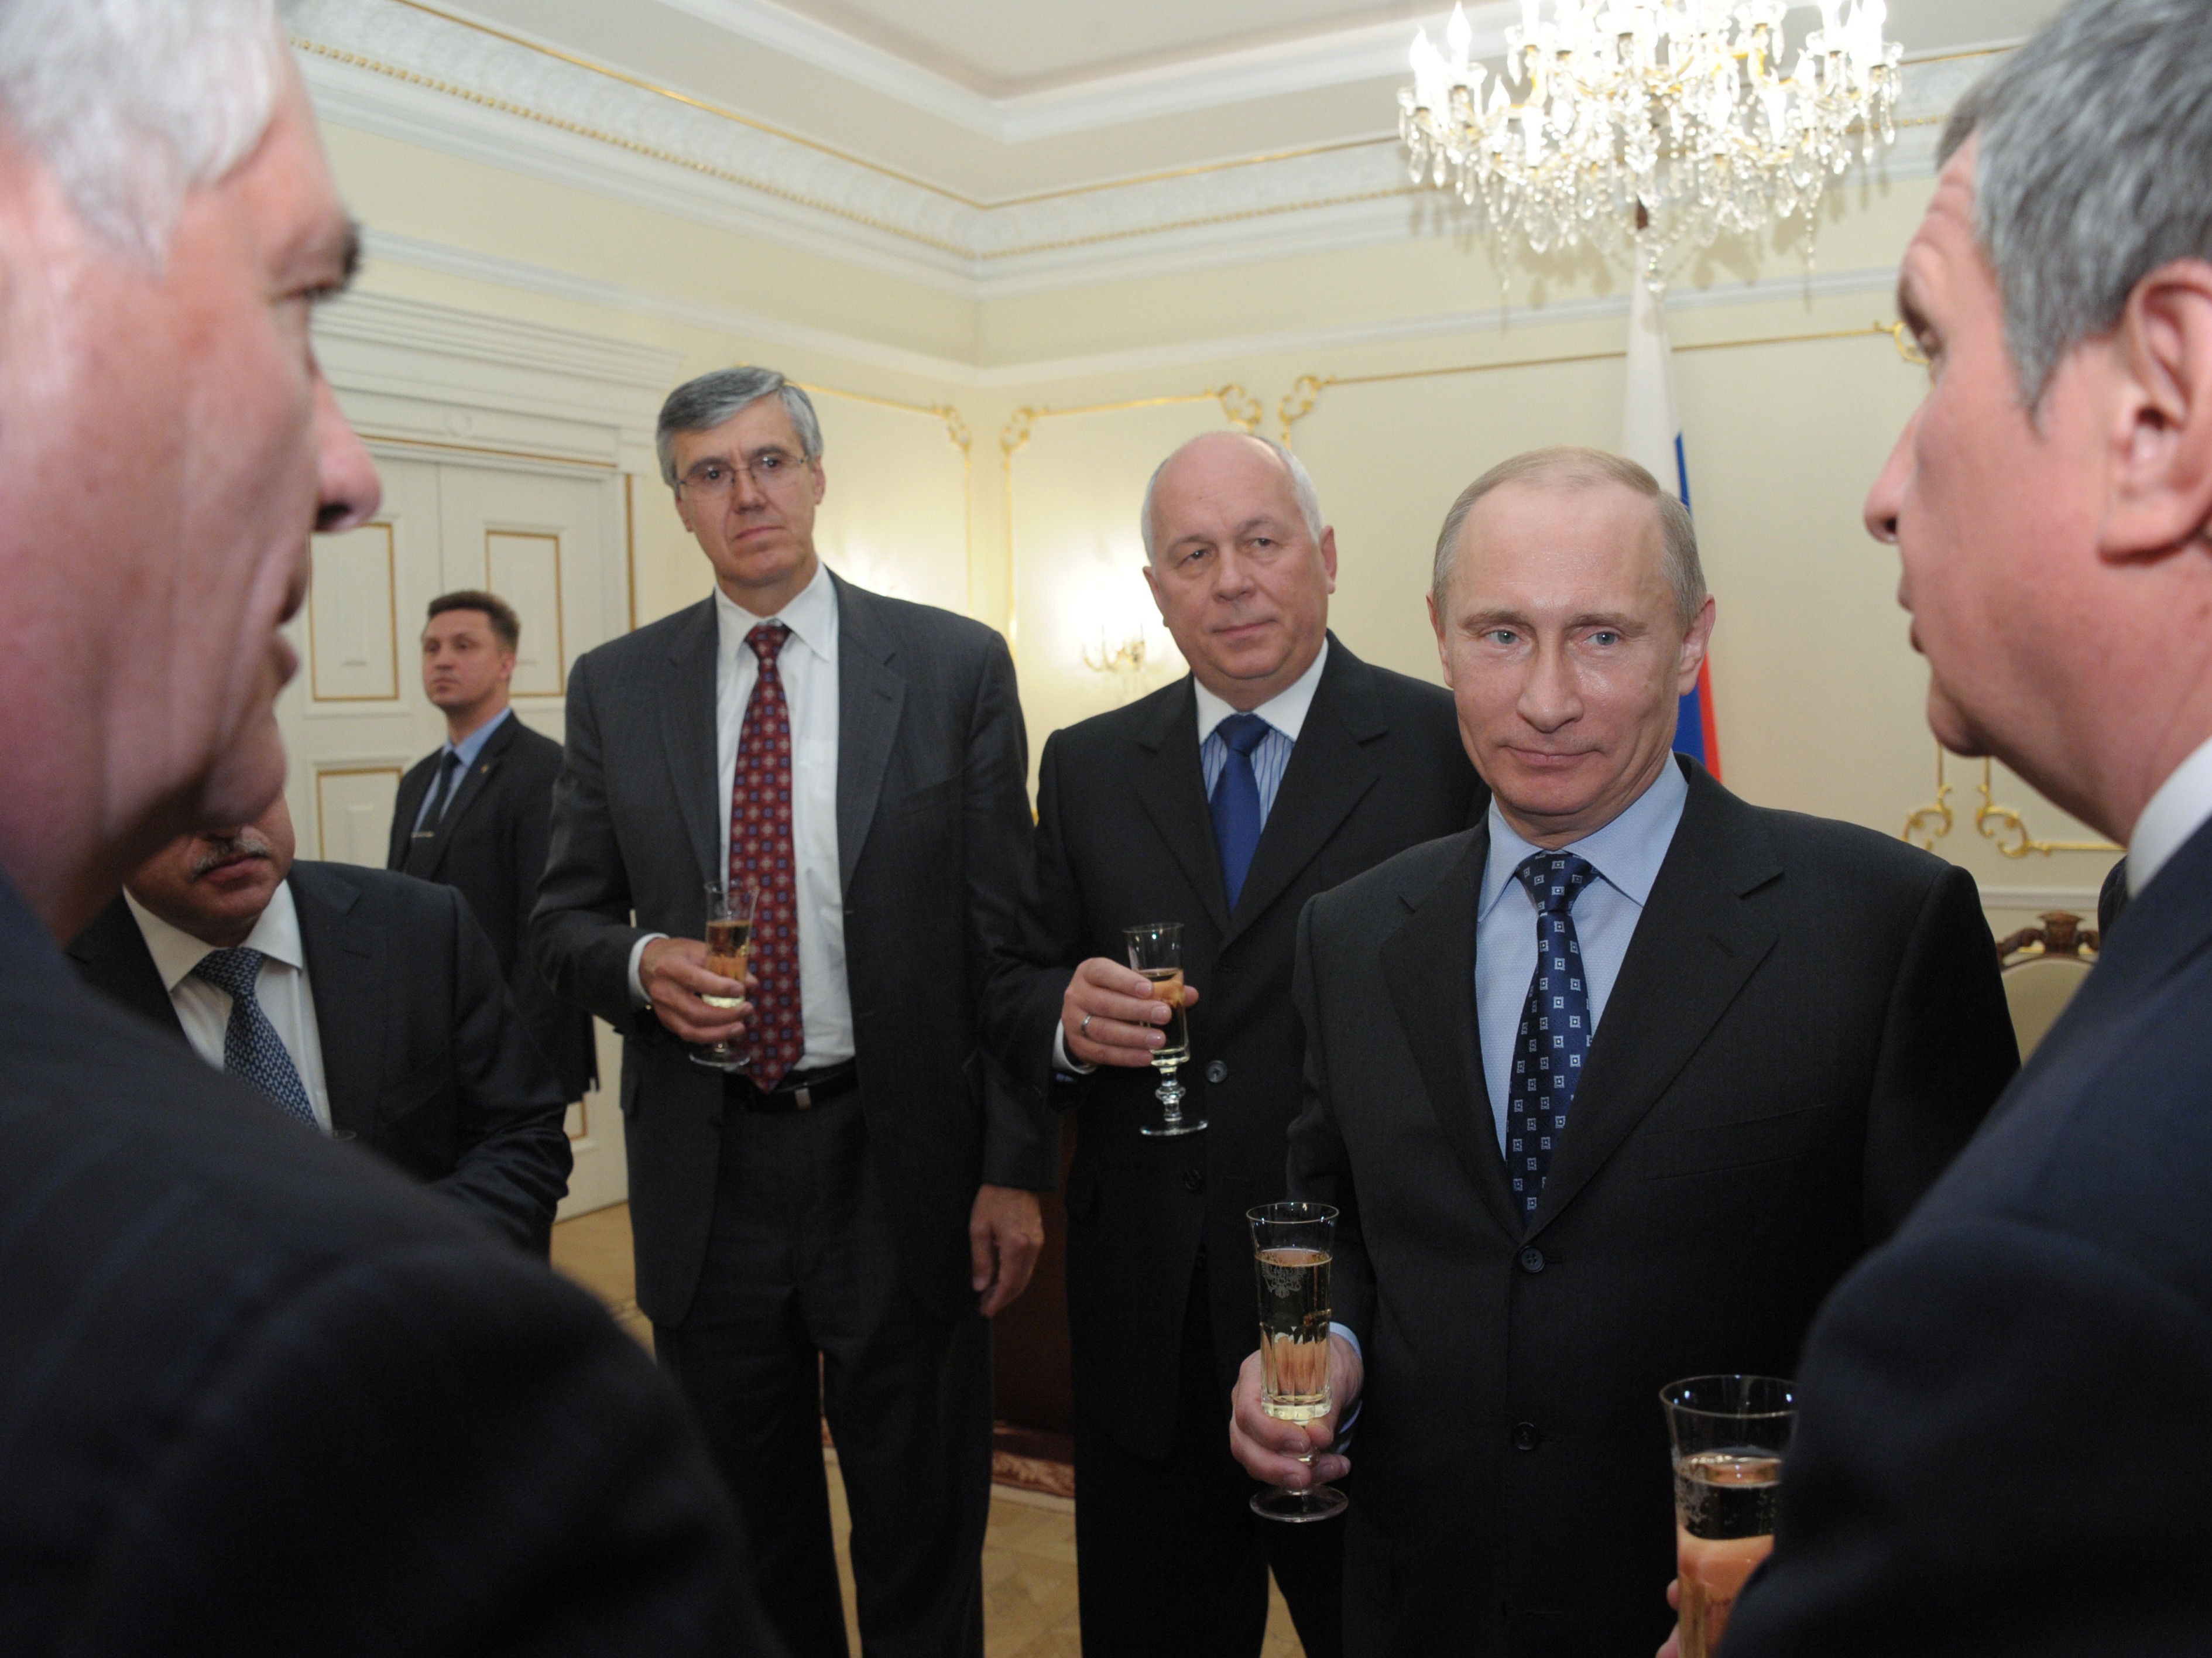 Image result for photos of rex tillerson and Sechin in russia